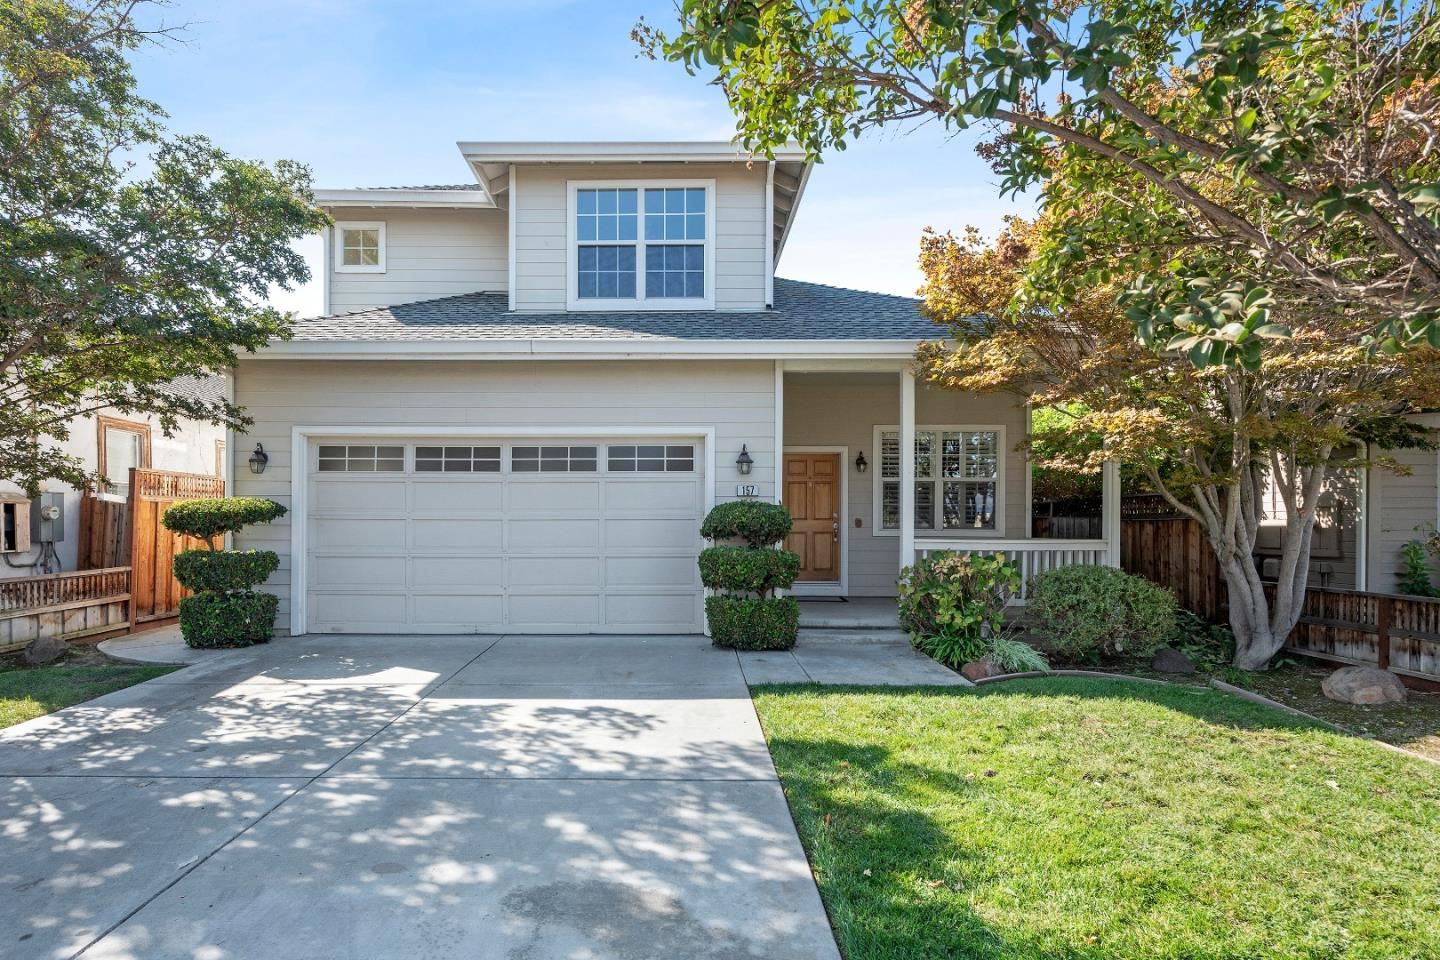 Photo for 157 Wabash AVE, SAN JOSE, CA 95128 (MLS # ML81816190)